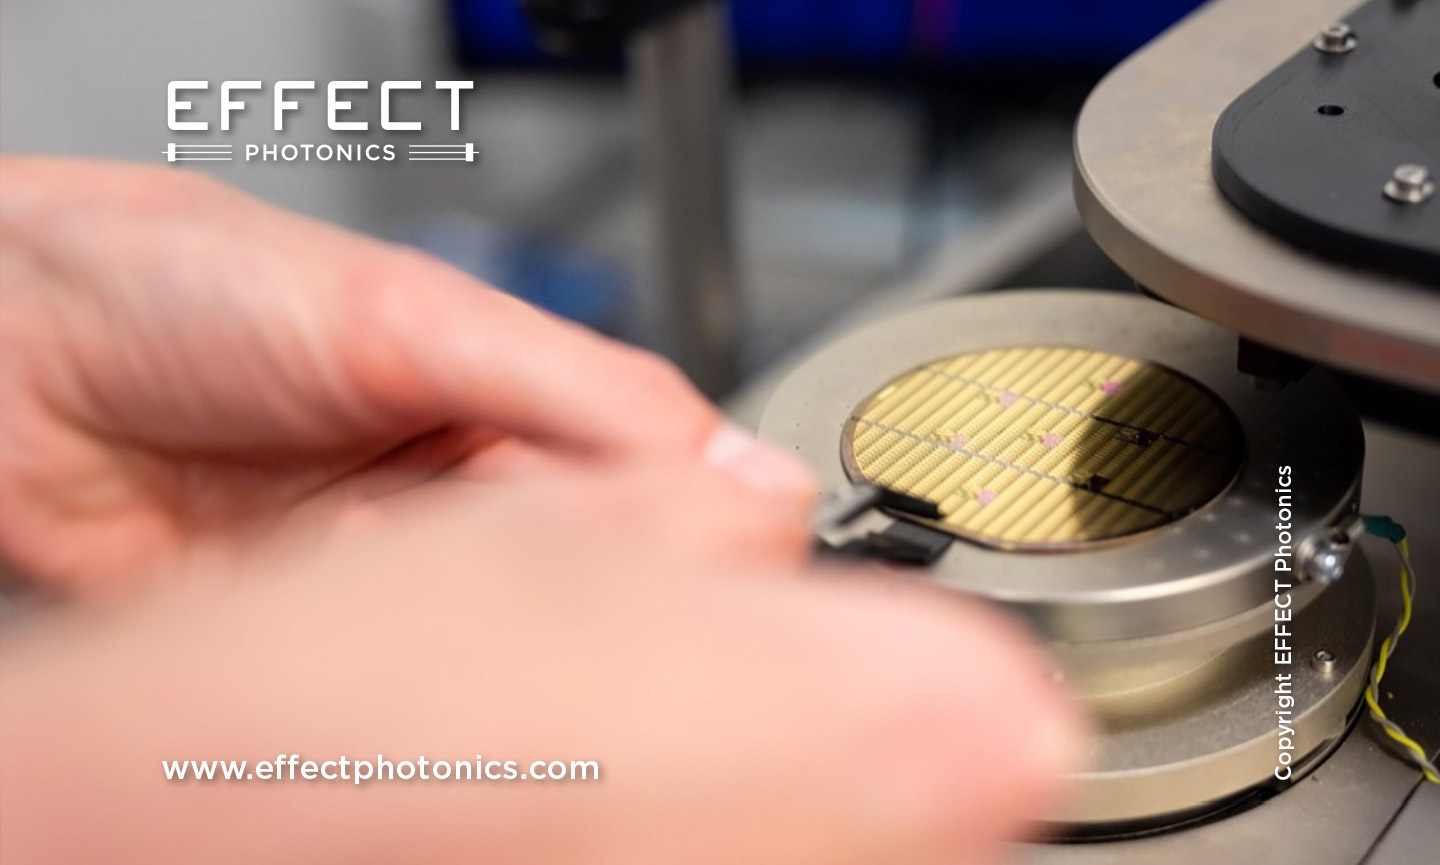 EFFECT Photonics' optical transceivers